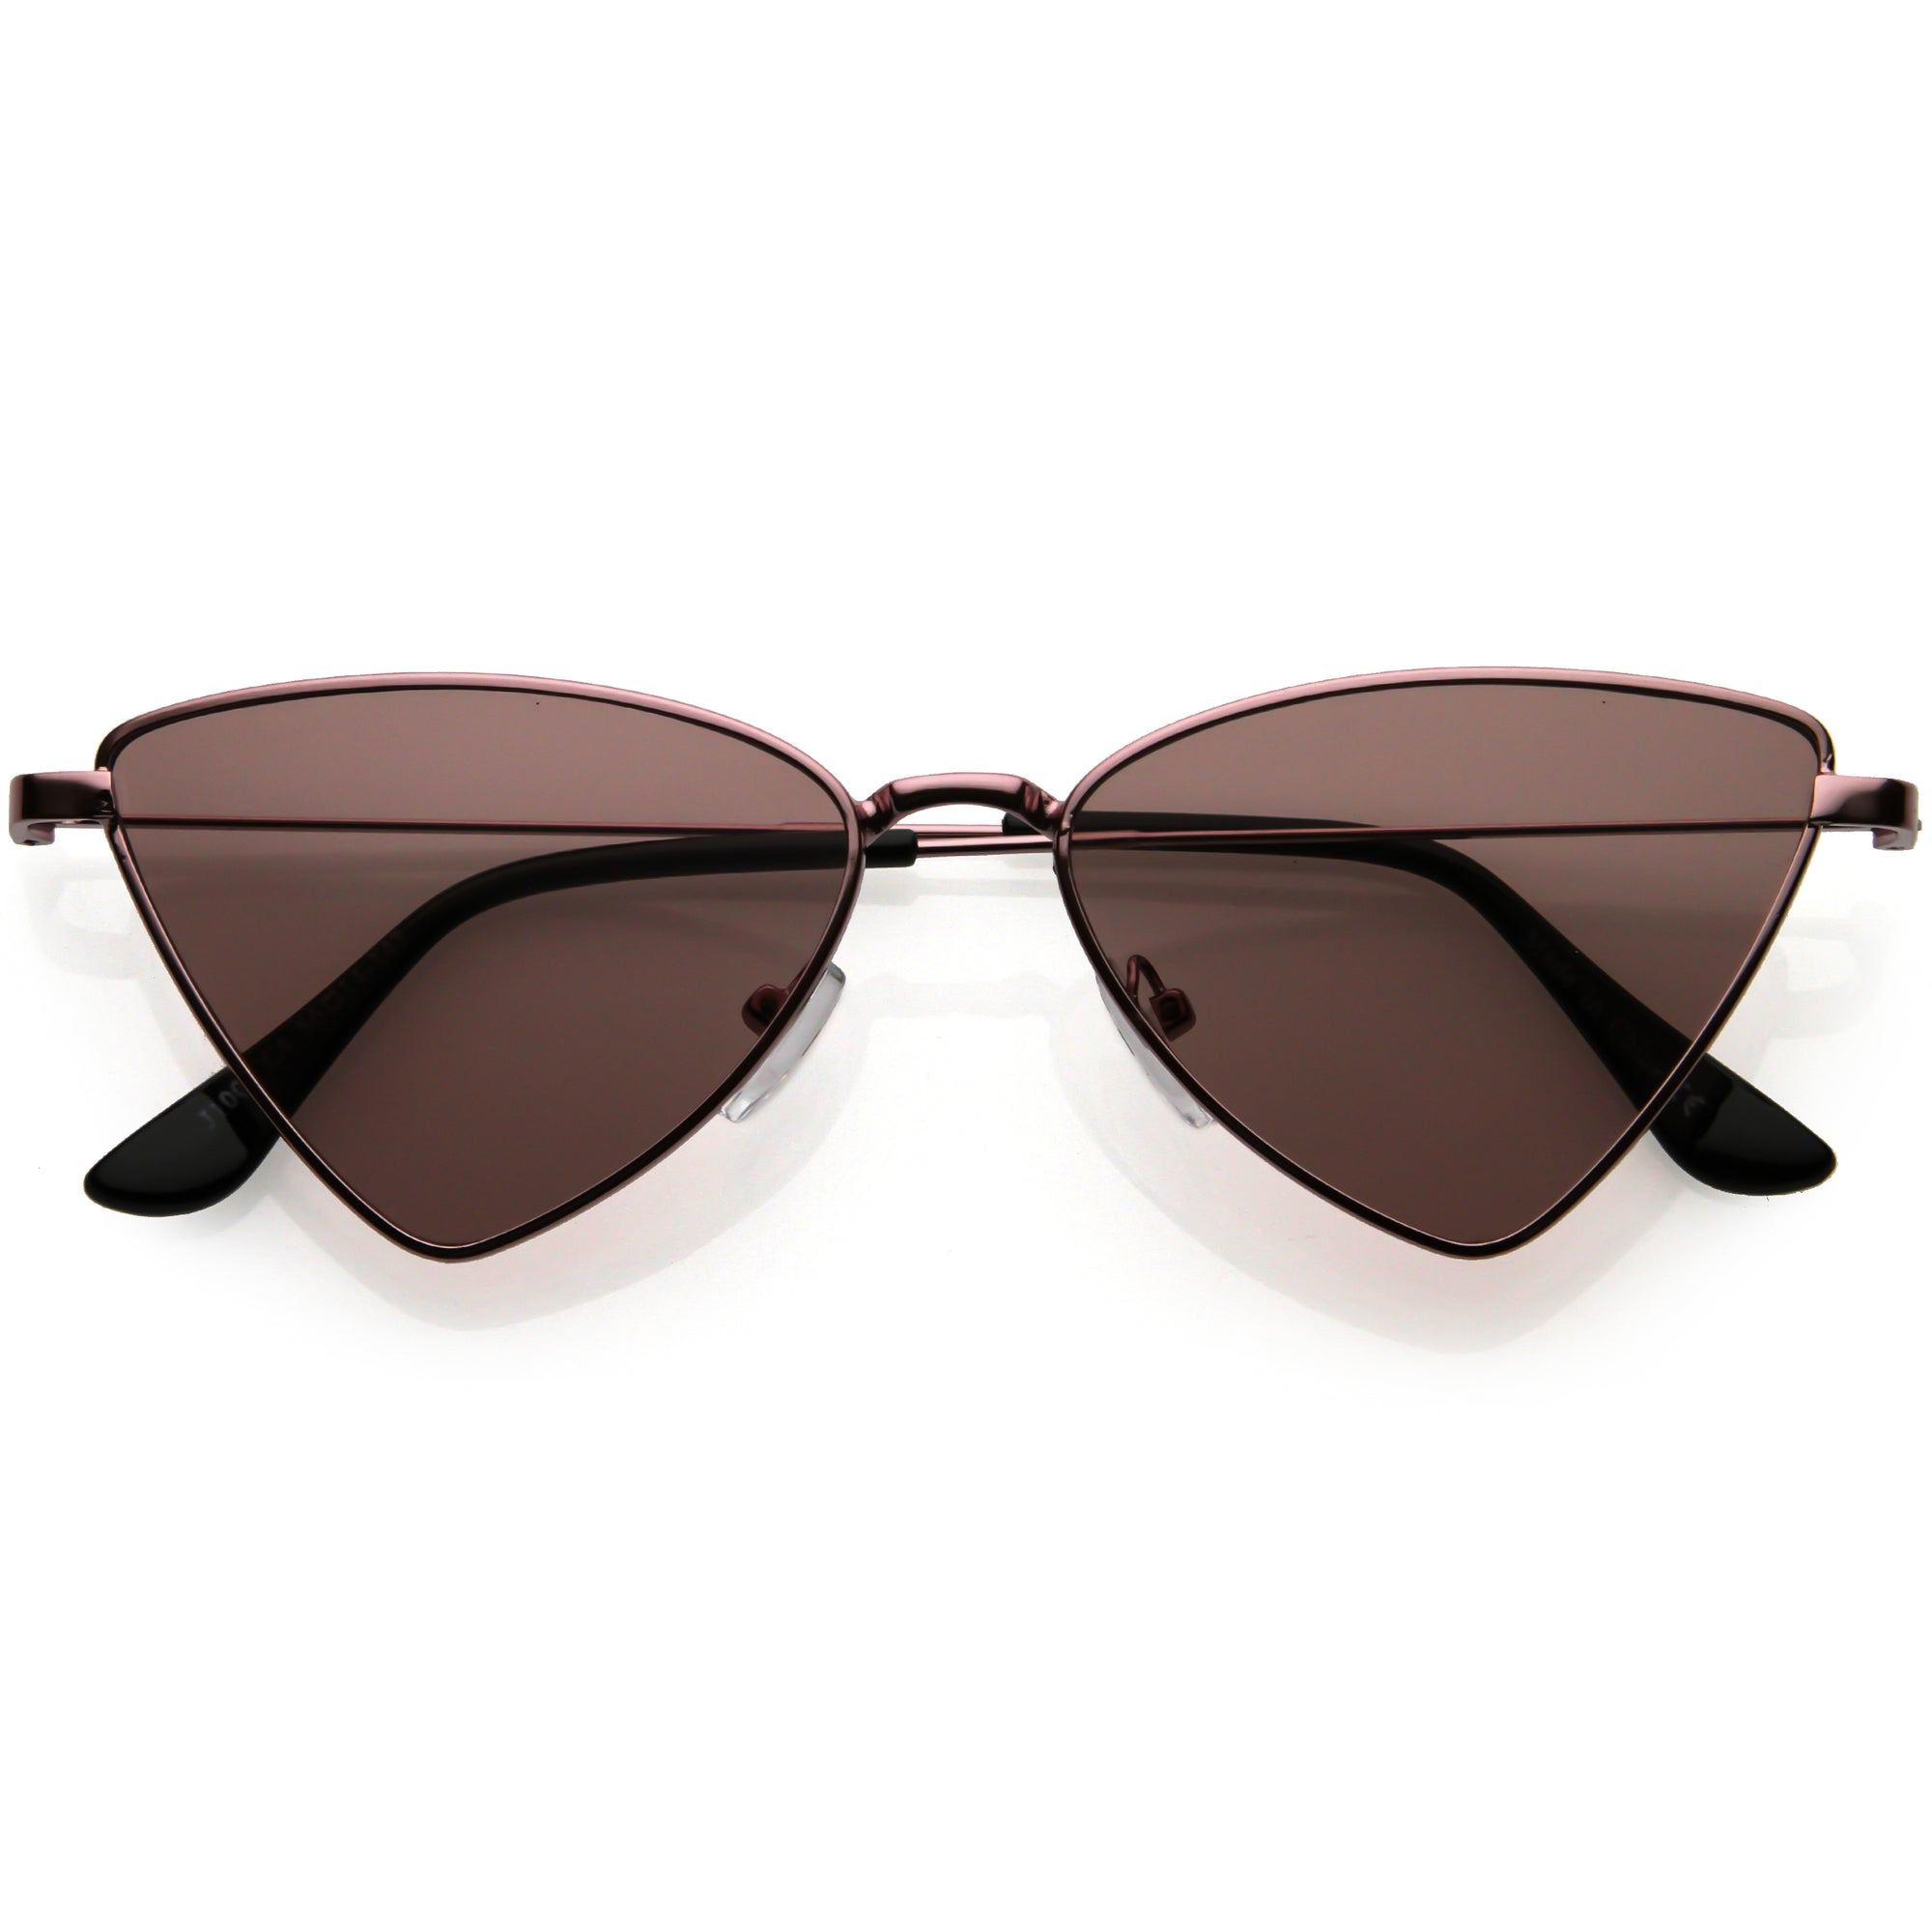 Slim Point Lightweight Metal Cat Eye Sunglasses D122